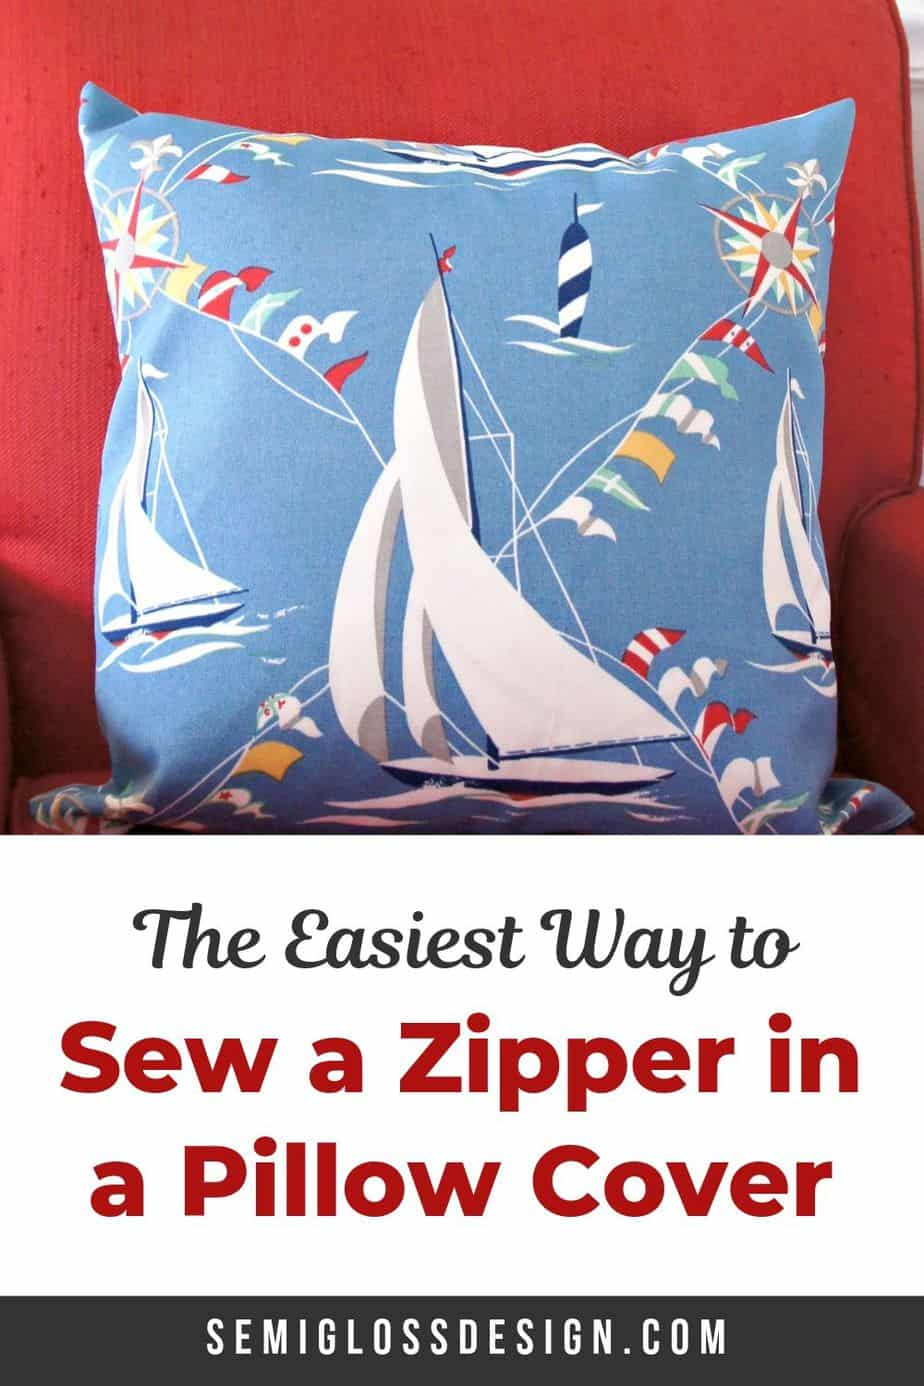 sew a zipper in a pillow